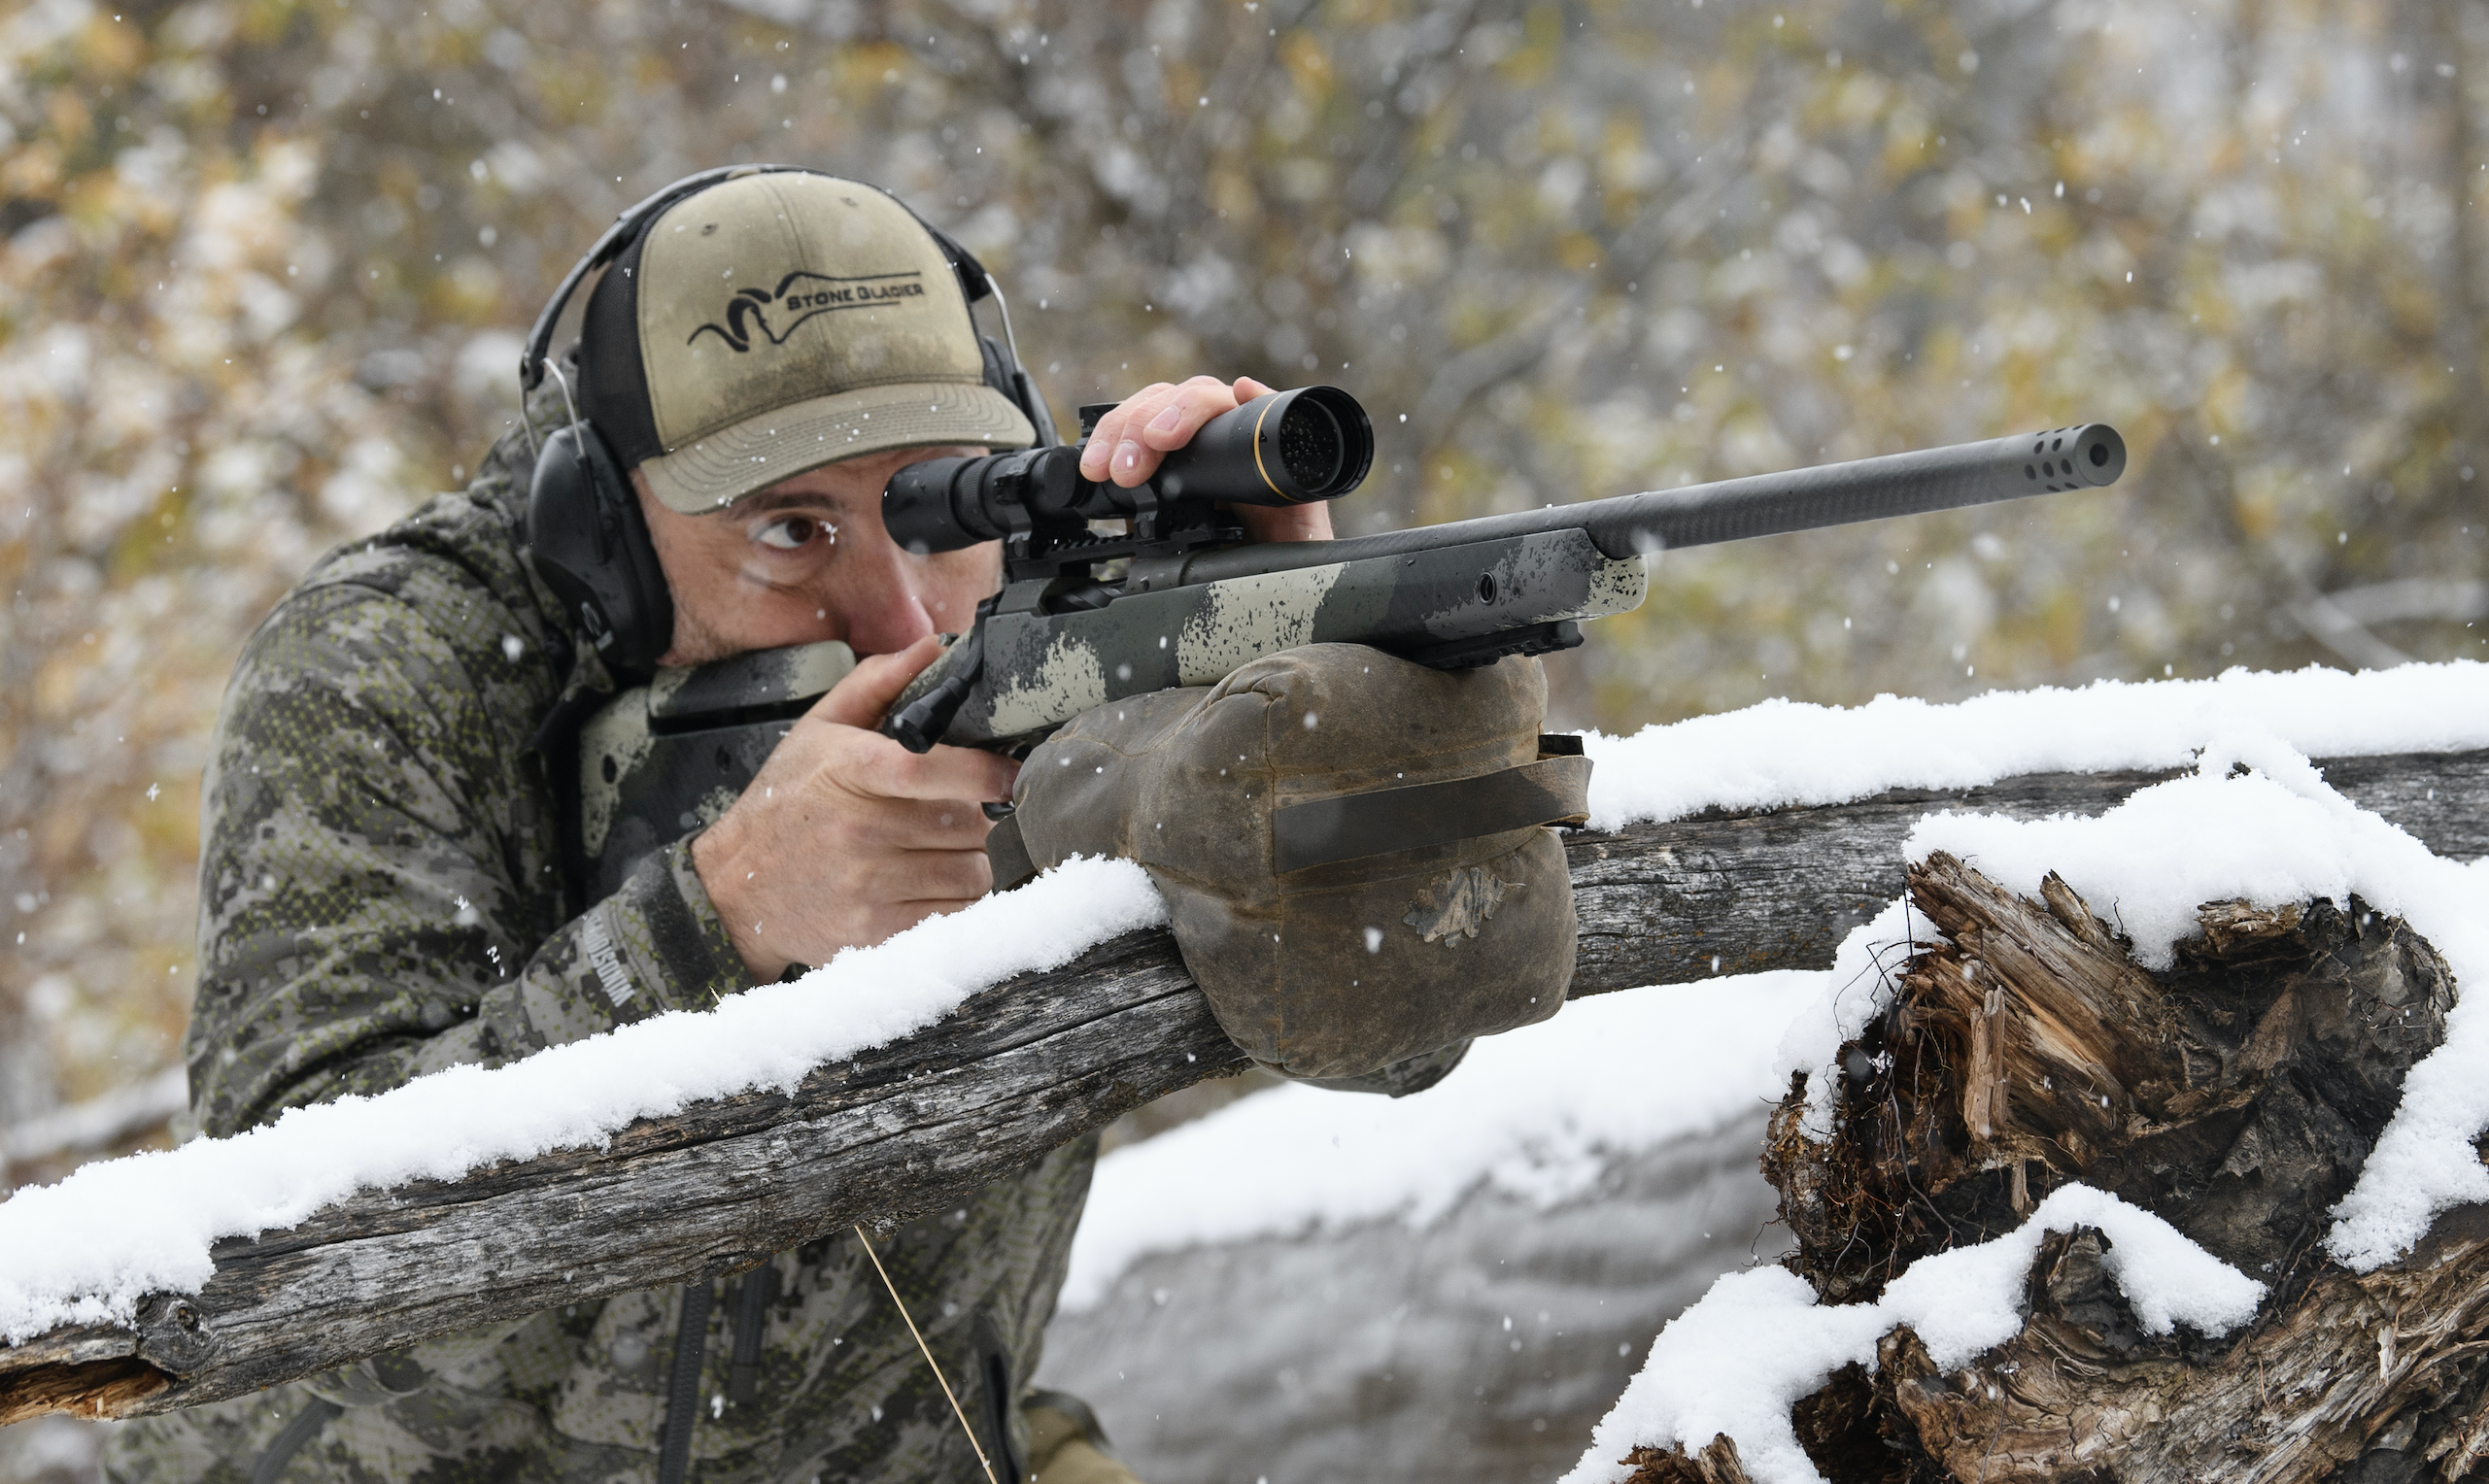 A hunter looks through the scope on his deer rifle, resting on a branch, in the snowy woods.